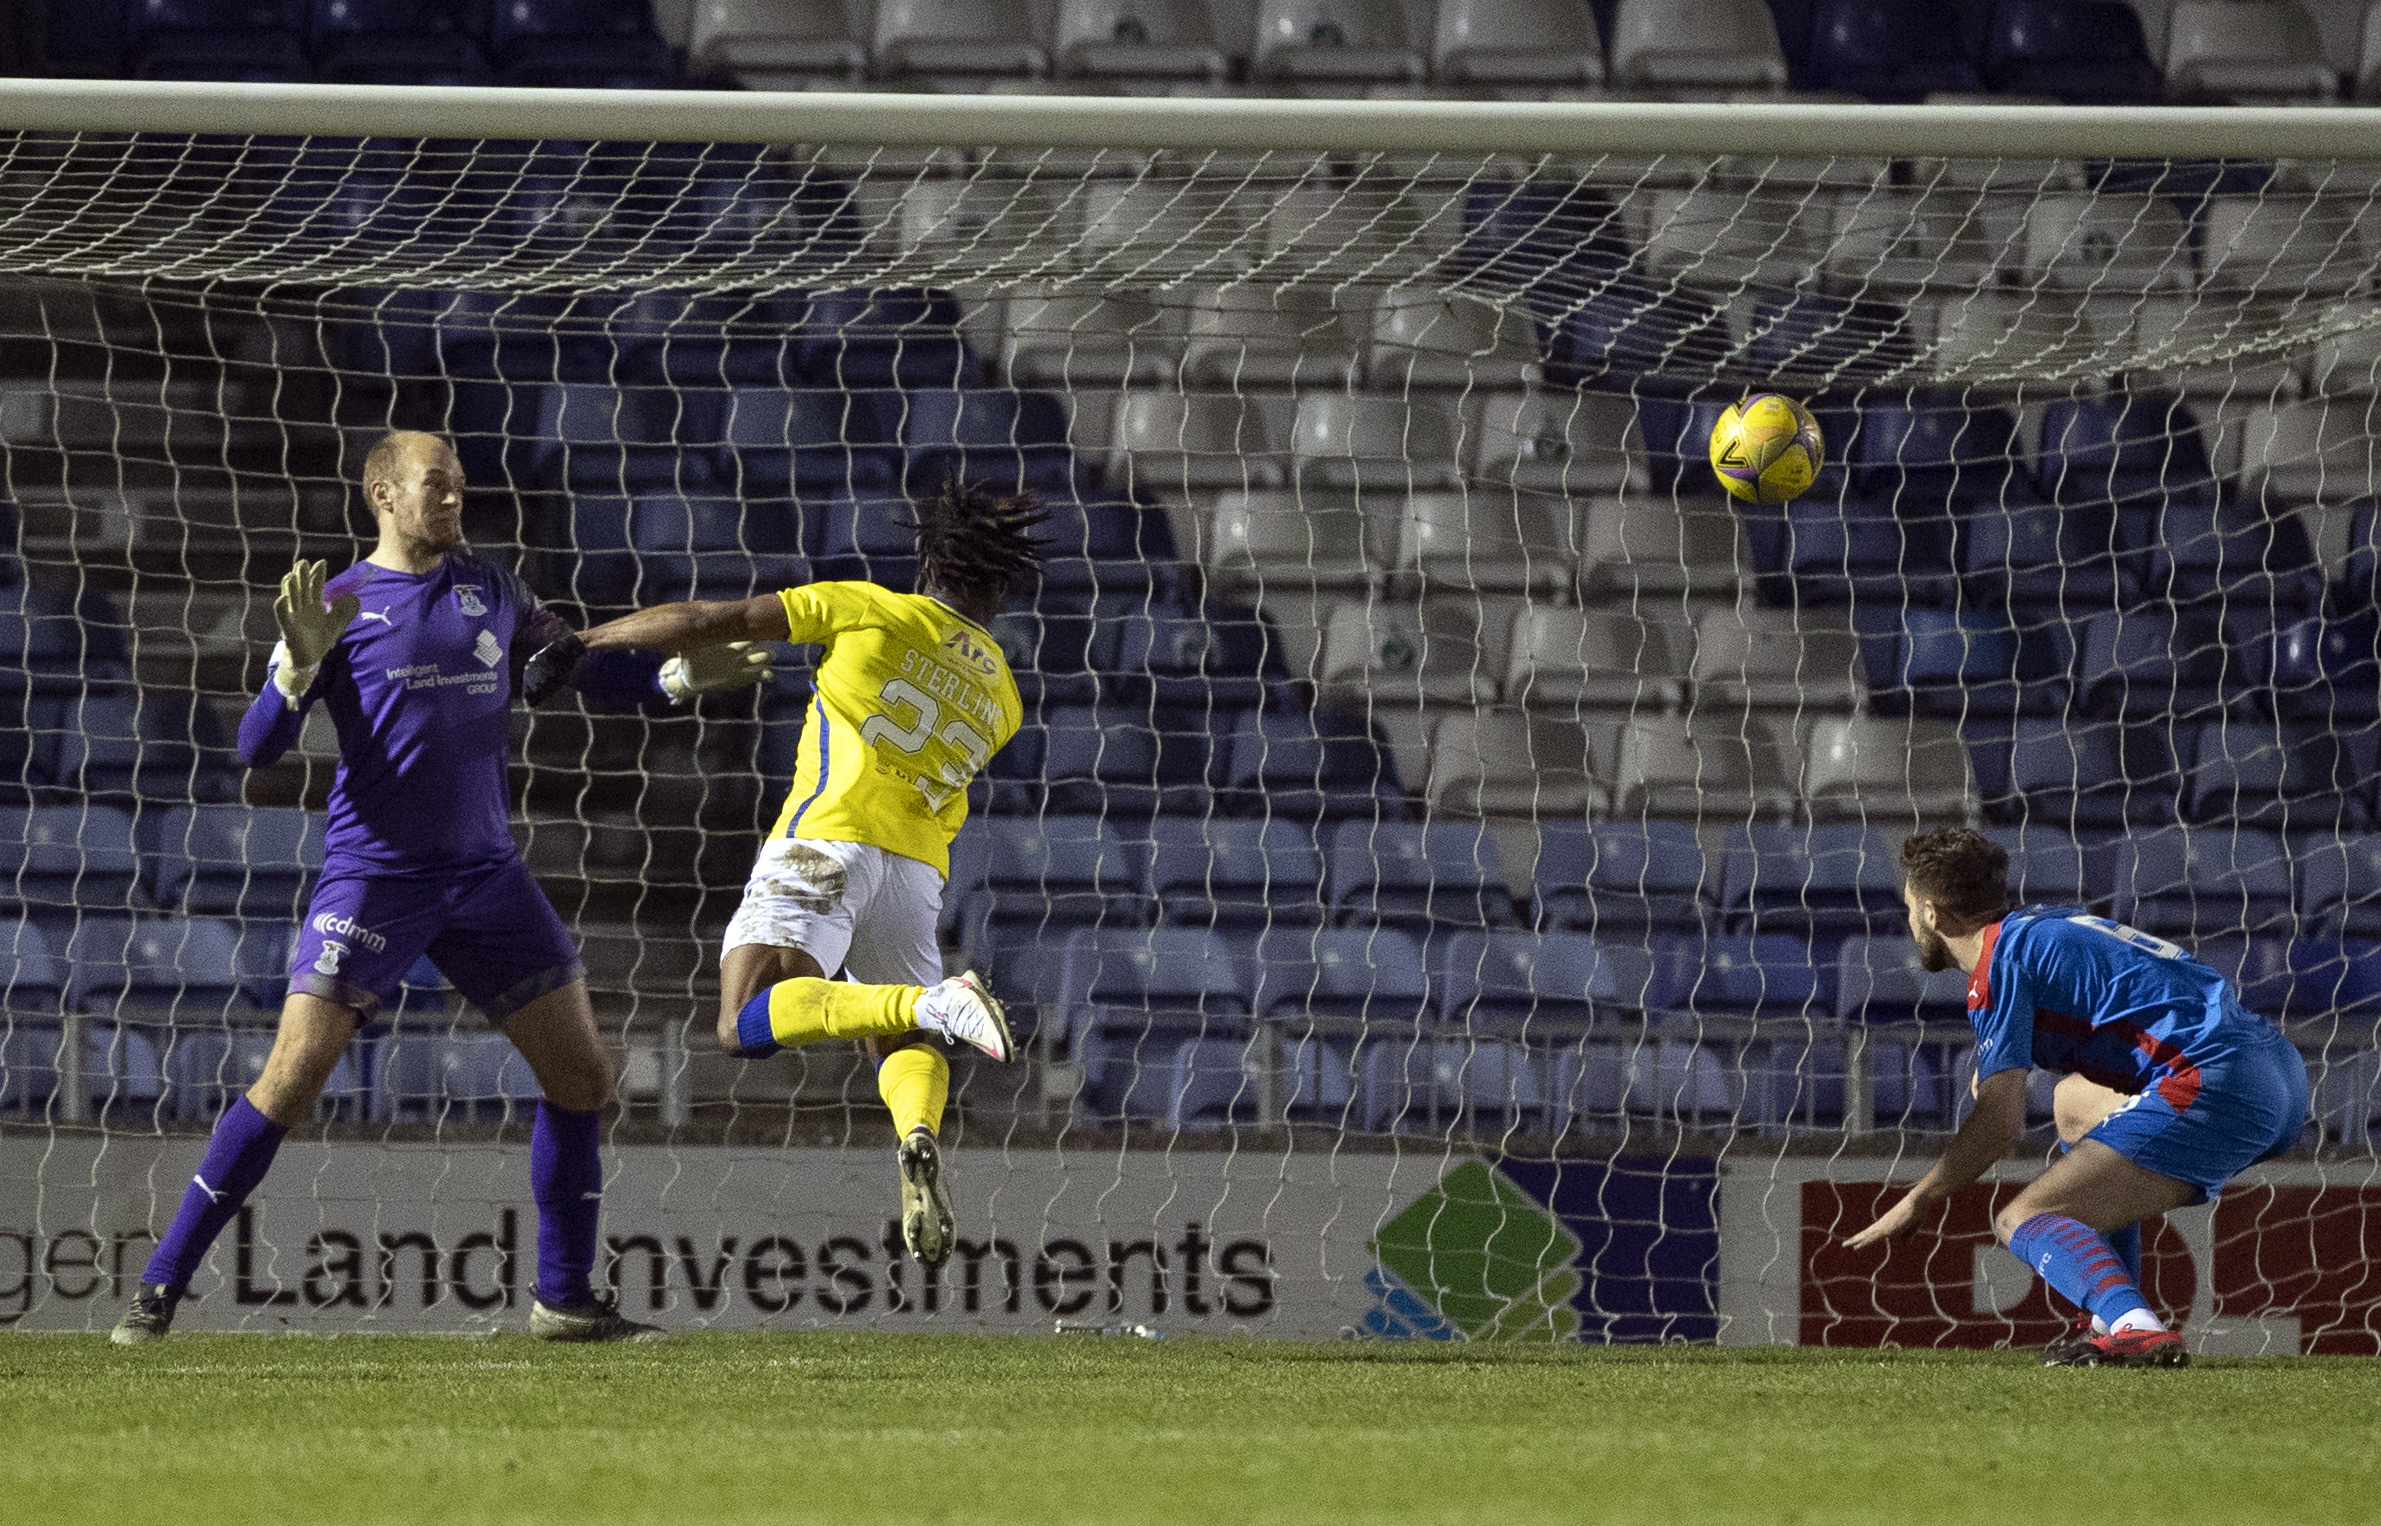 Picture gallery: Inverness 0 Morton 1